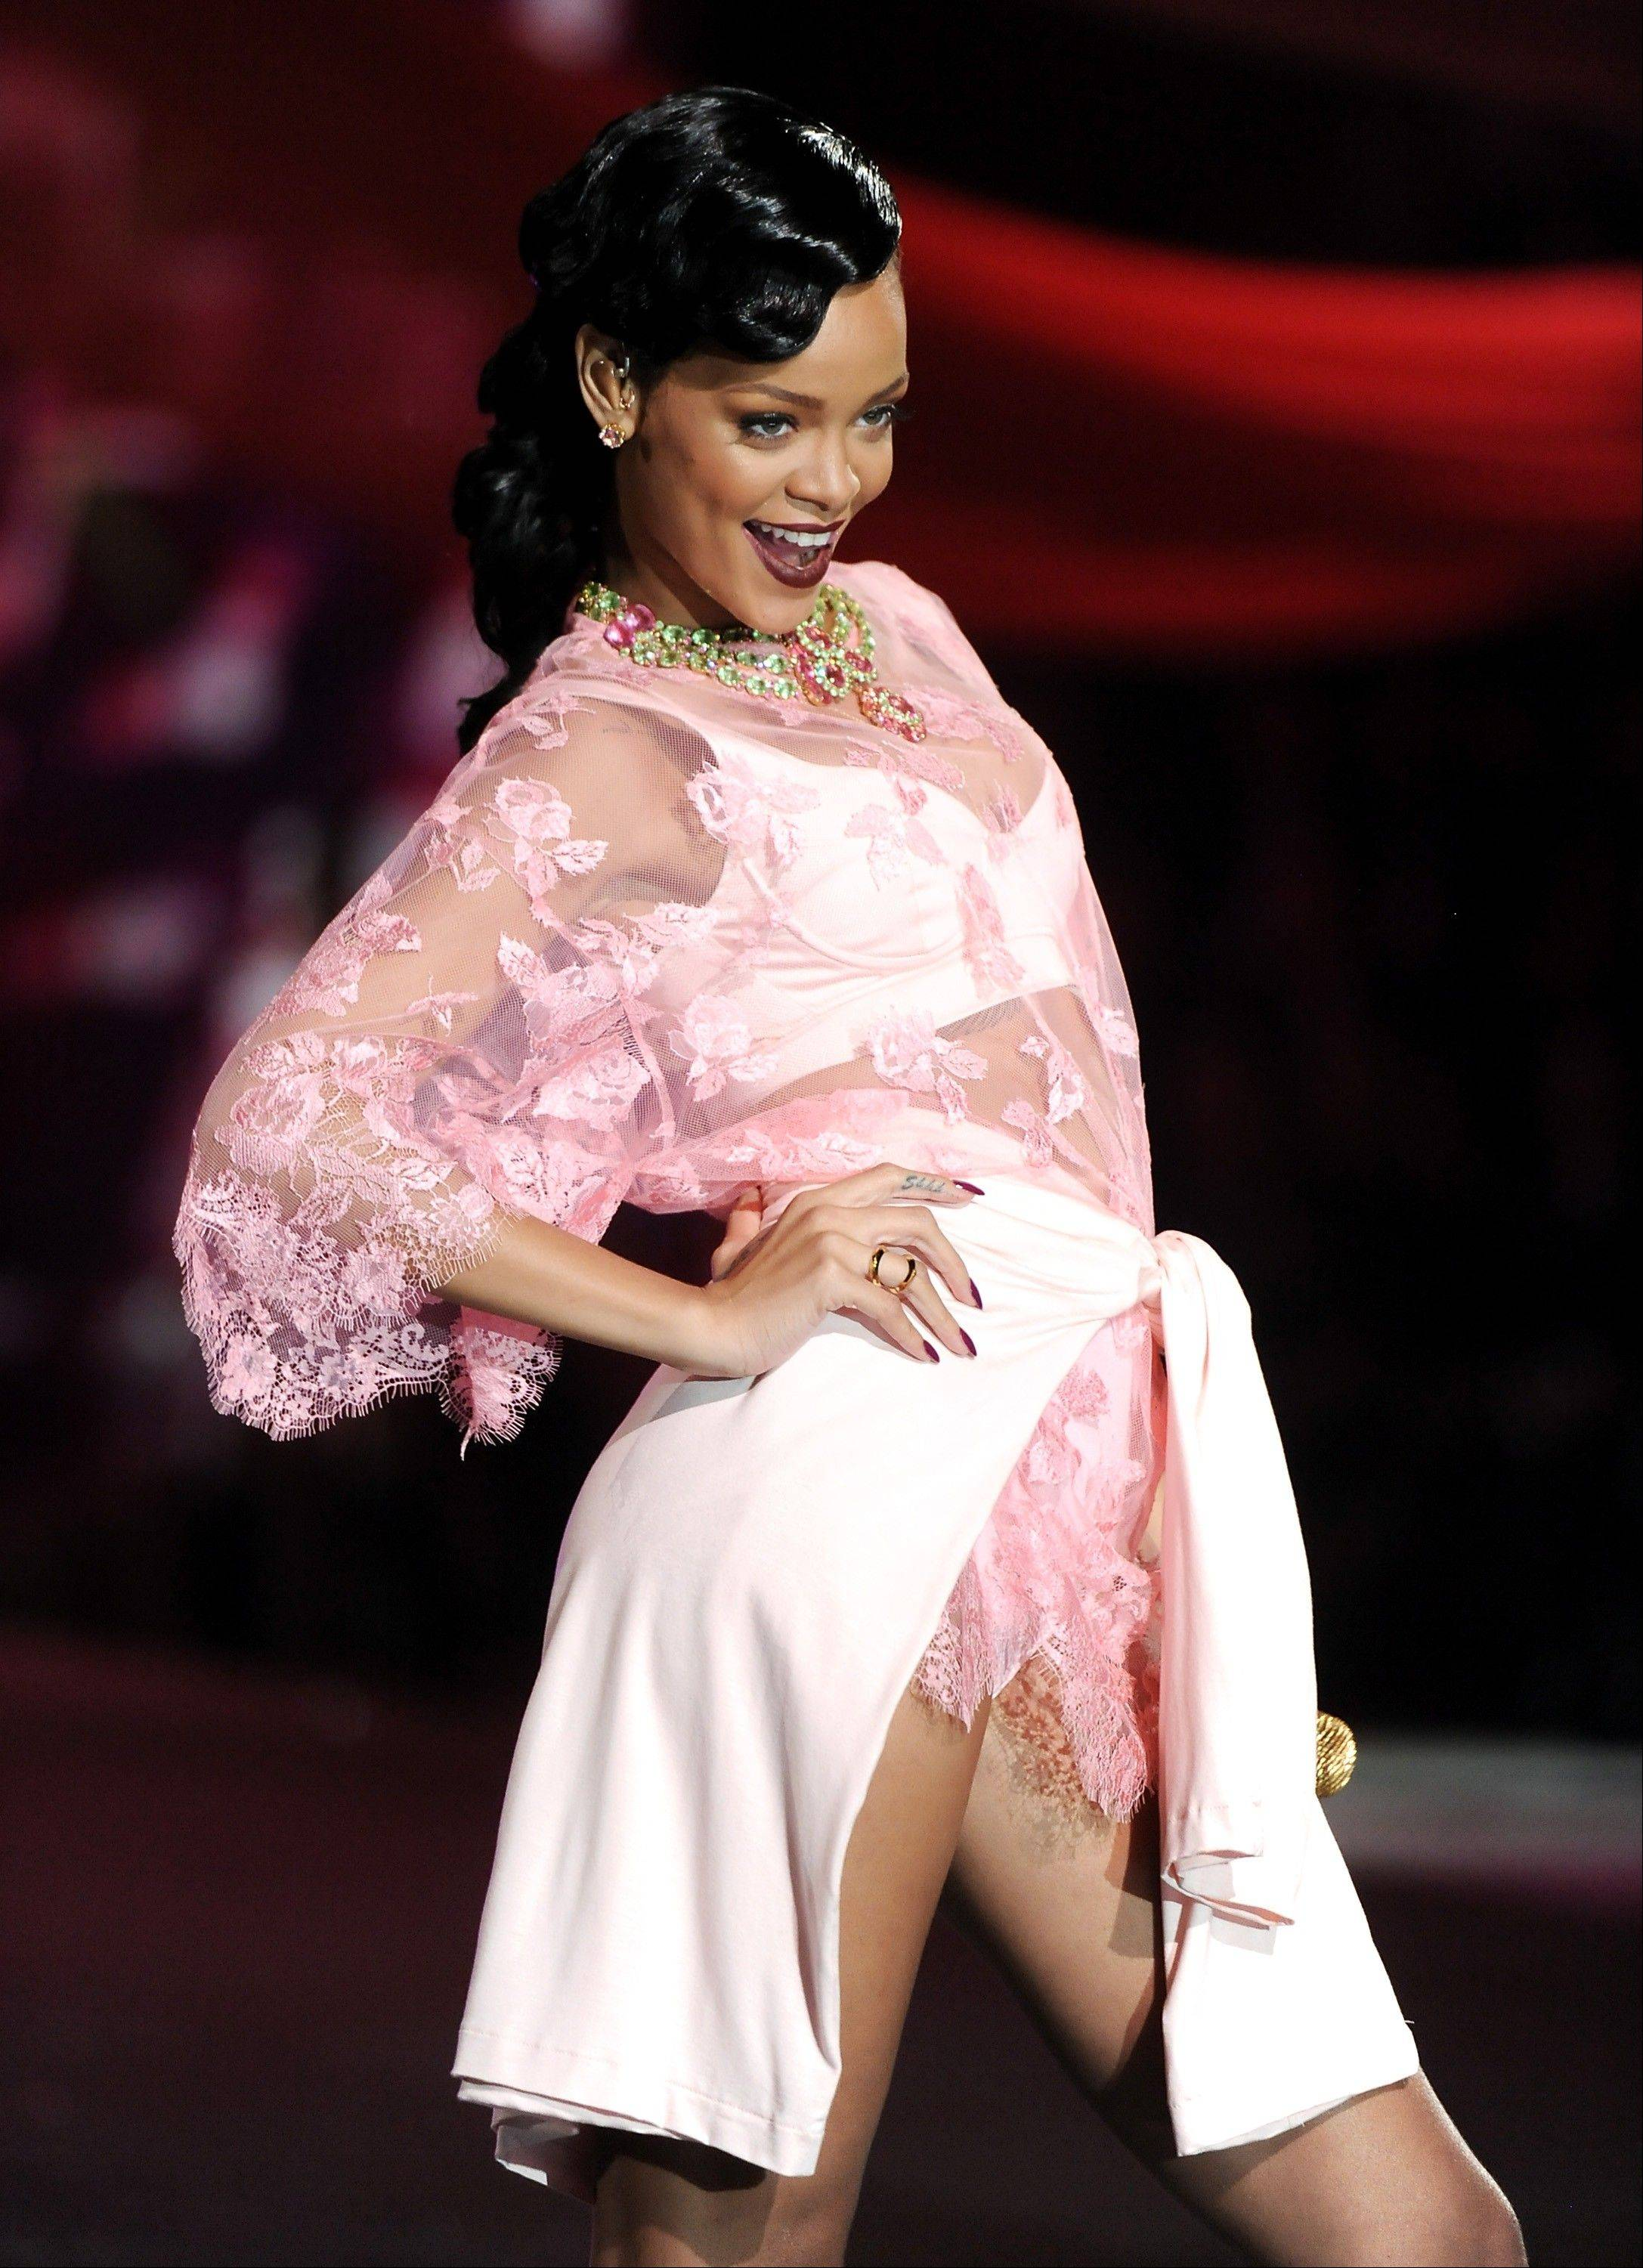 Singer Rihanna performs during the 2012 Victoria's Secret Fashion Show.